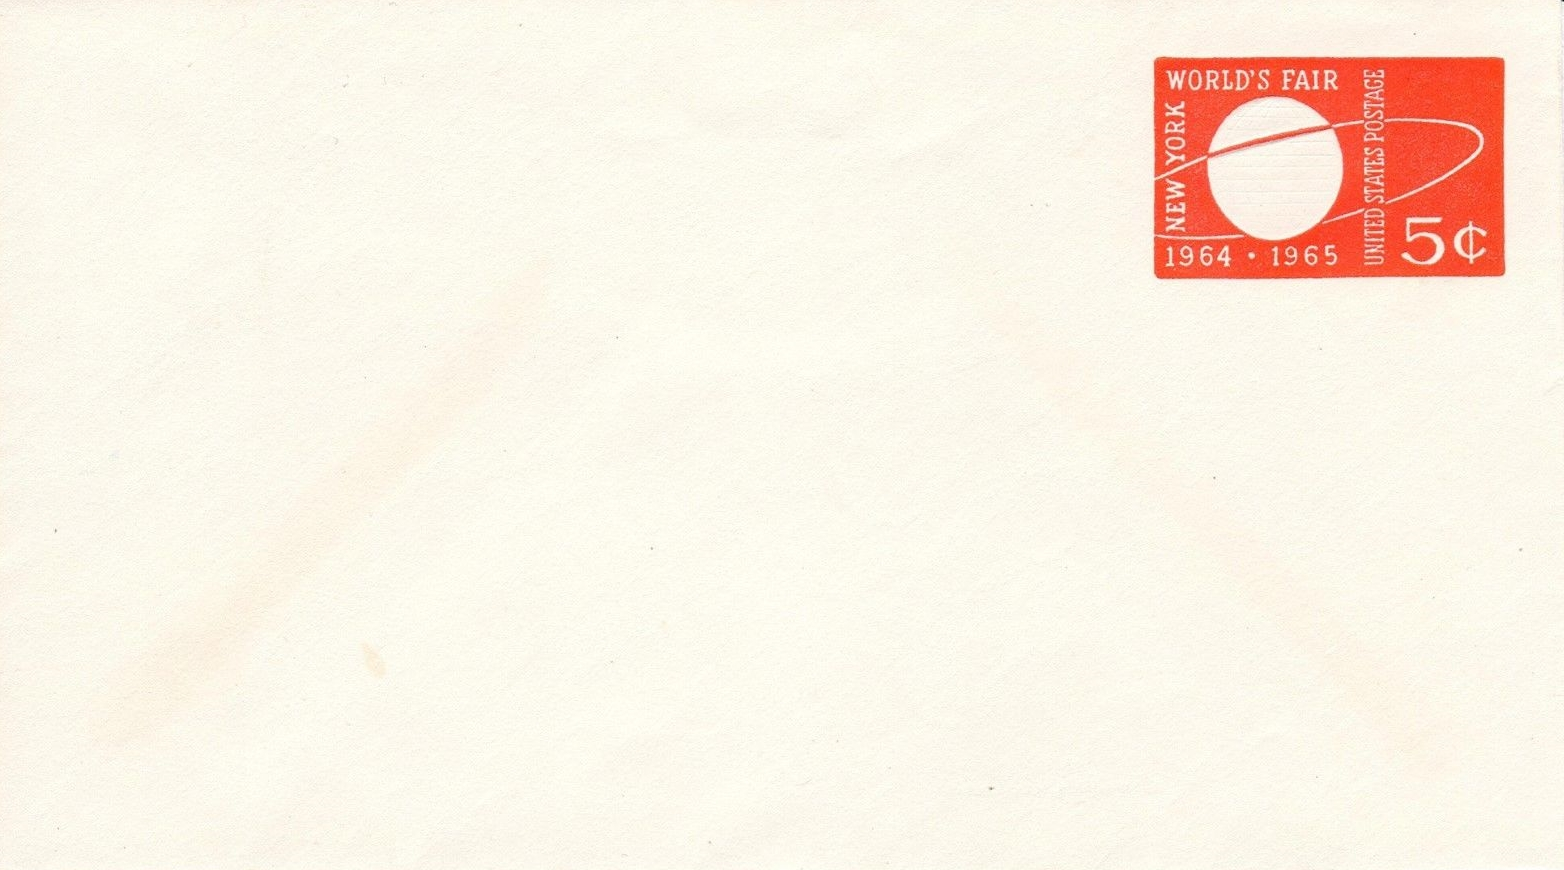 United States - Scott #546 (1964) - stamped embossed envelope, mint